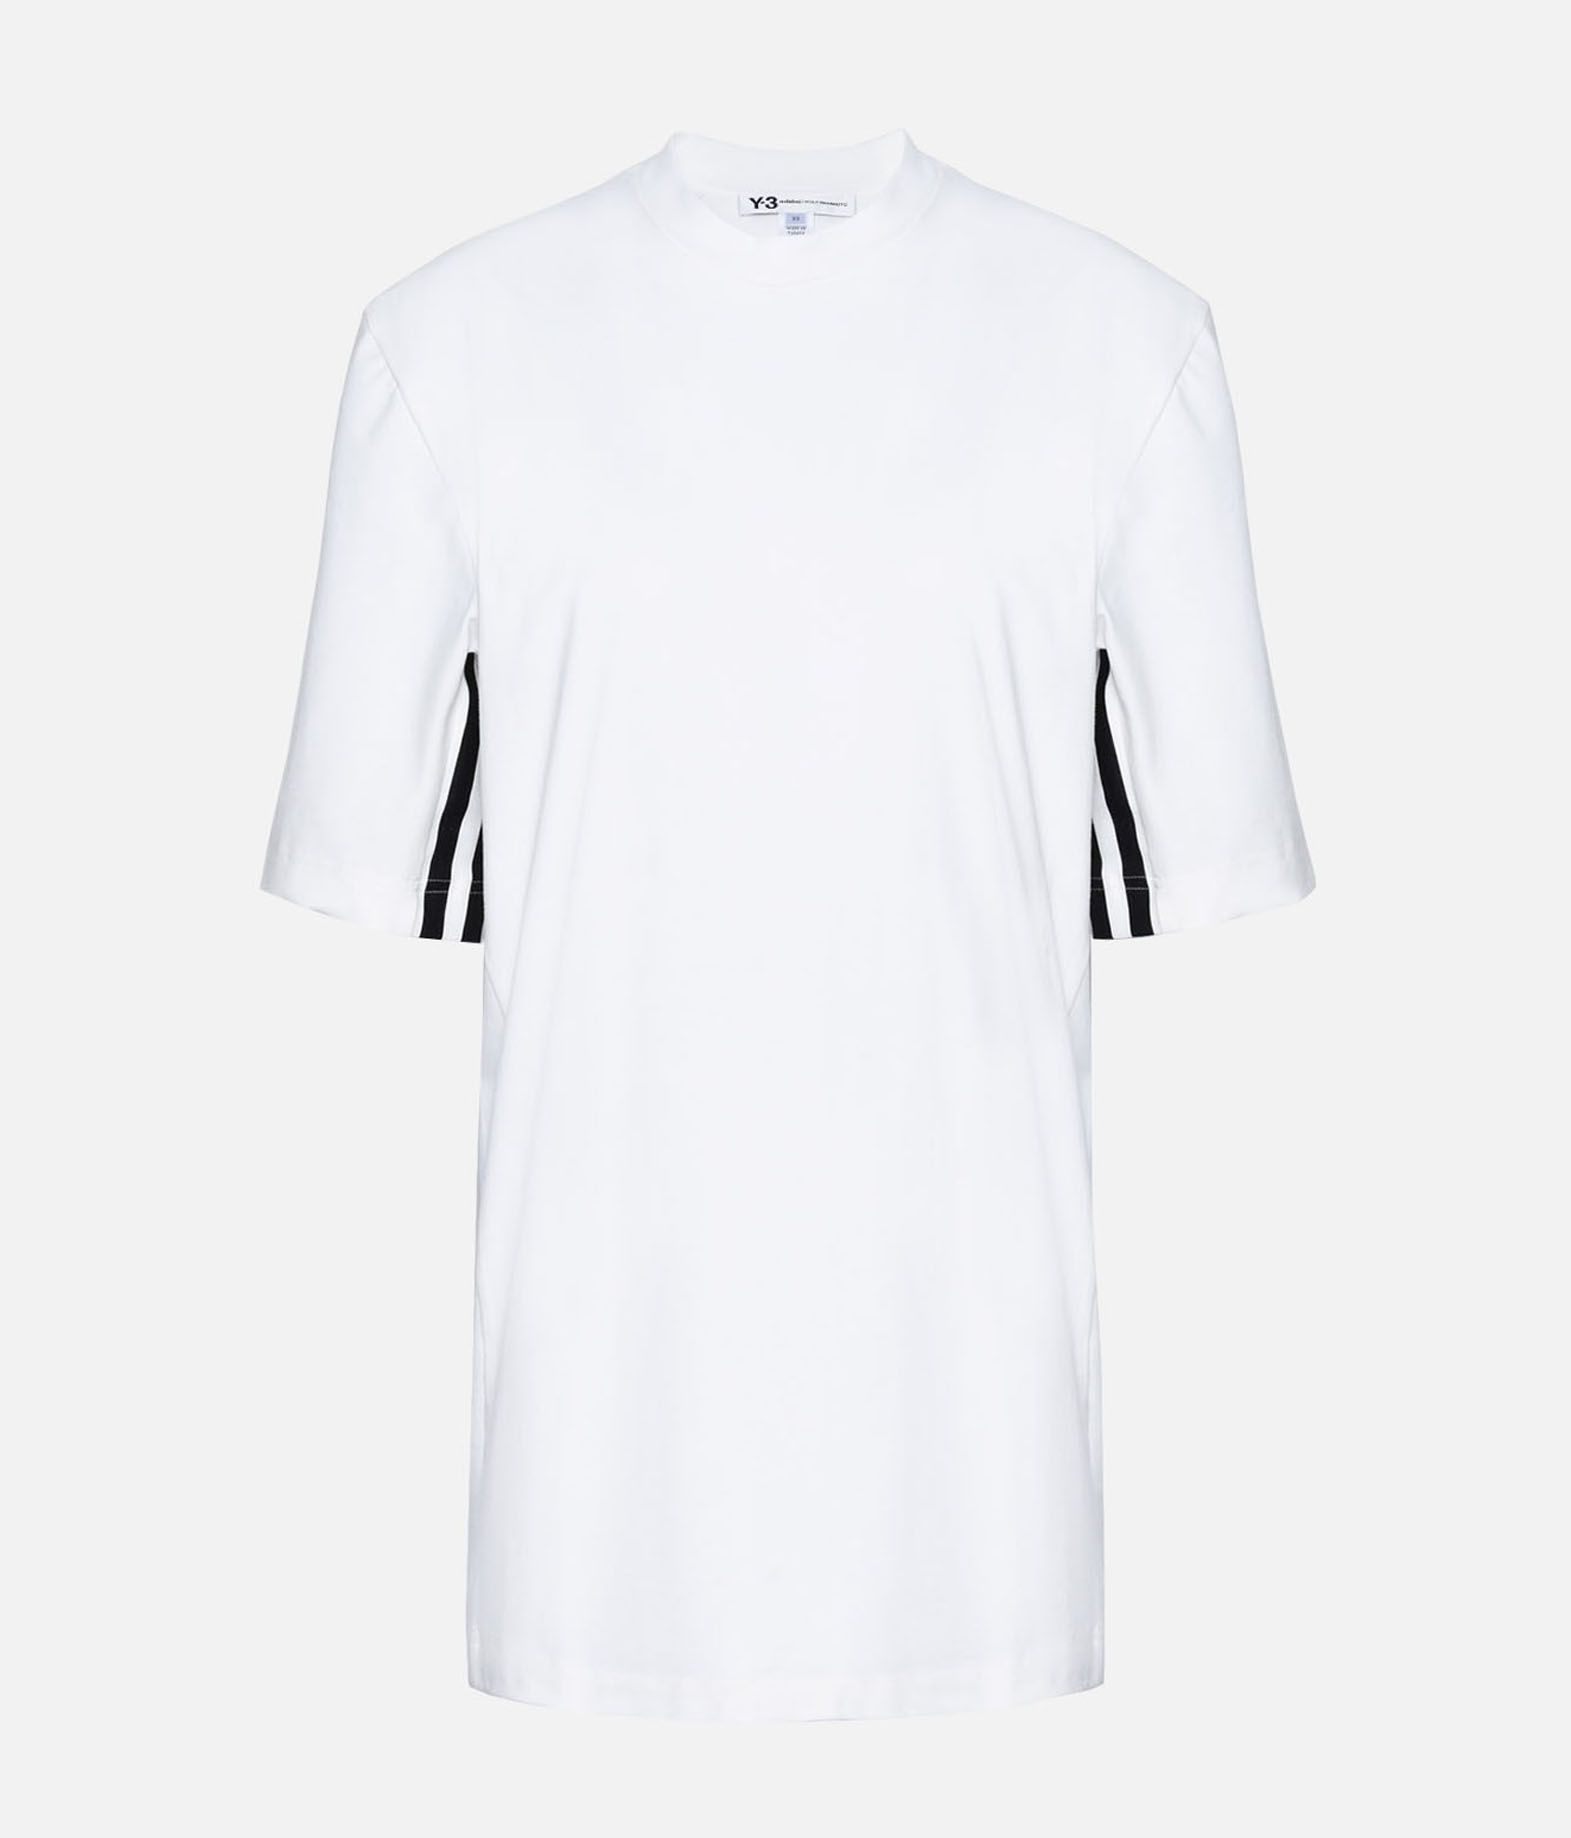 Y-3 Y-3 3-Stripes Tee Short sleeve t-shirt Woman f